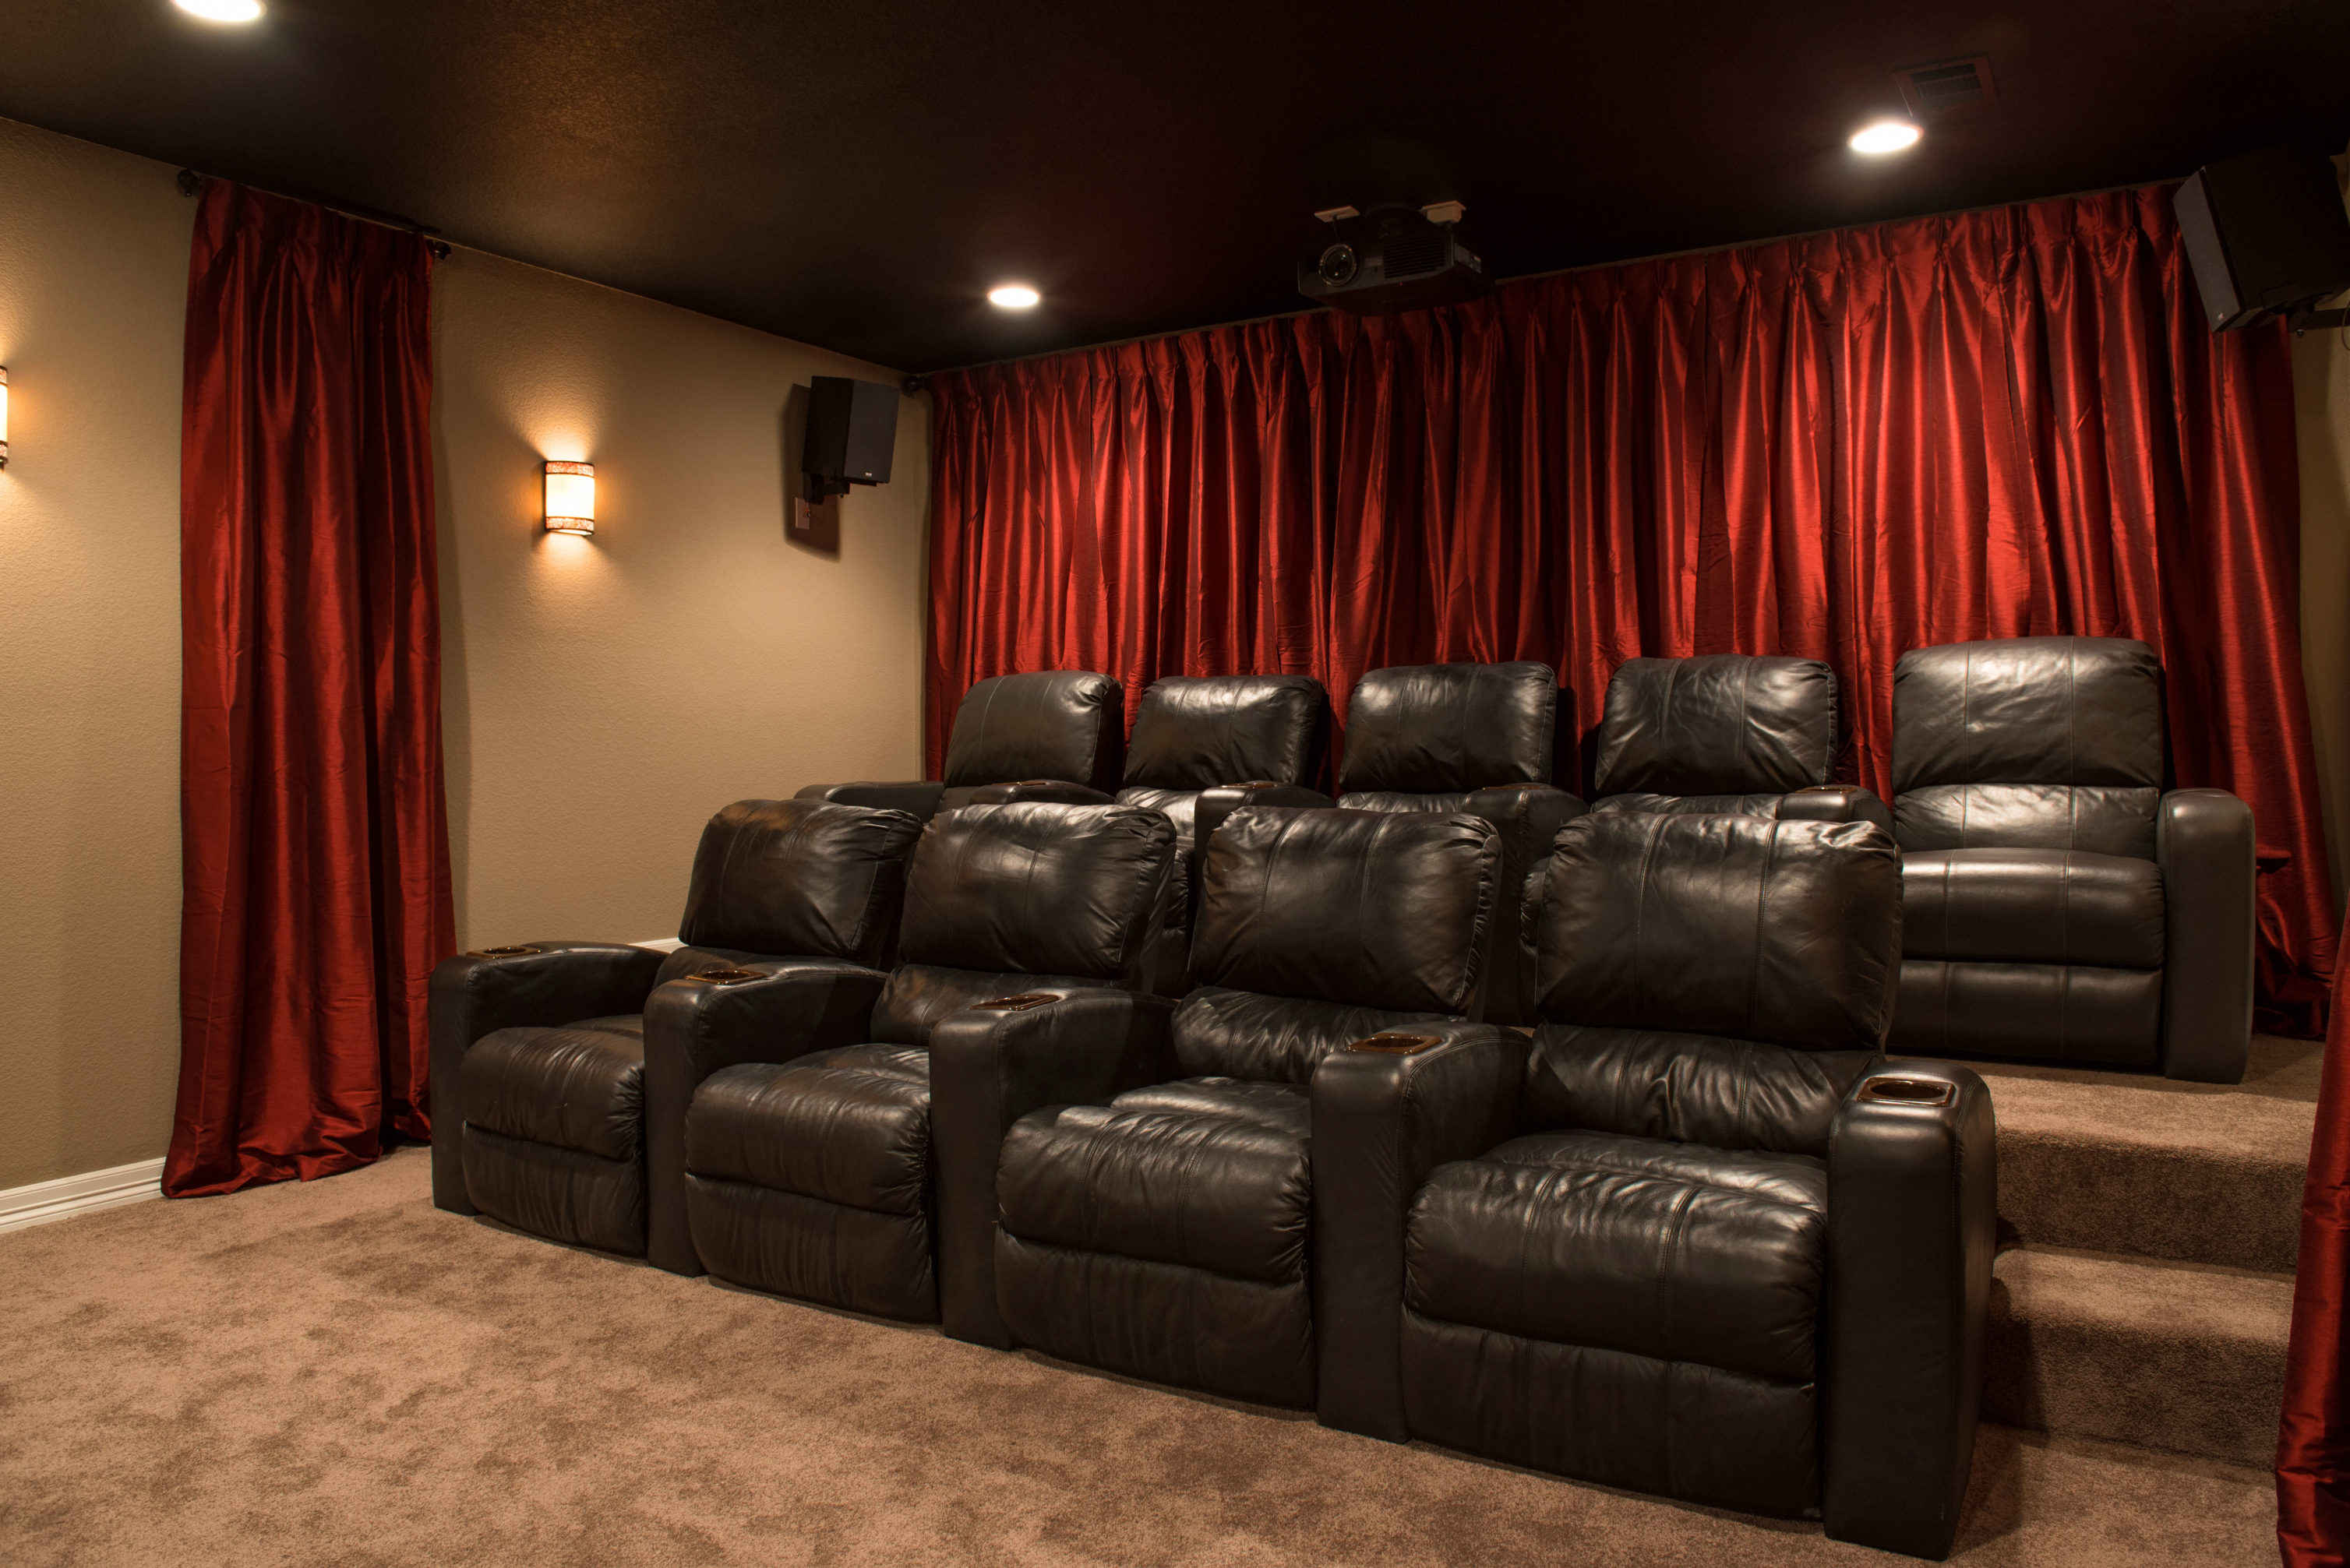 Basement Finishing Ideas  Brothers Construction In Denver. How To Decorate Living Room In Indian Style. Pictures Of Living Room Color Schemes. Country Style Living Room Chairs. Living Room Drapes Pictures. Burgundy Living Room. Wooden Living Room Chairs. Small Living Room Couch Ideas. Rugs Living Room